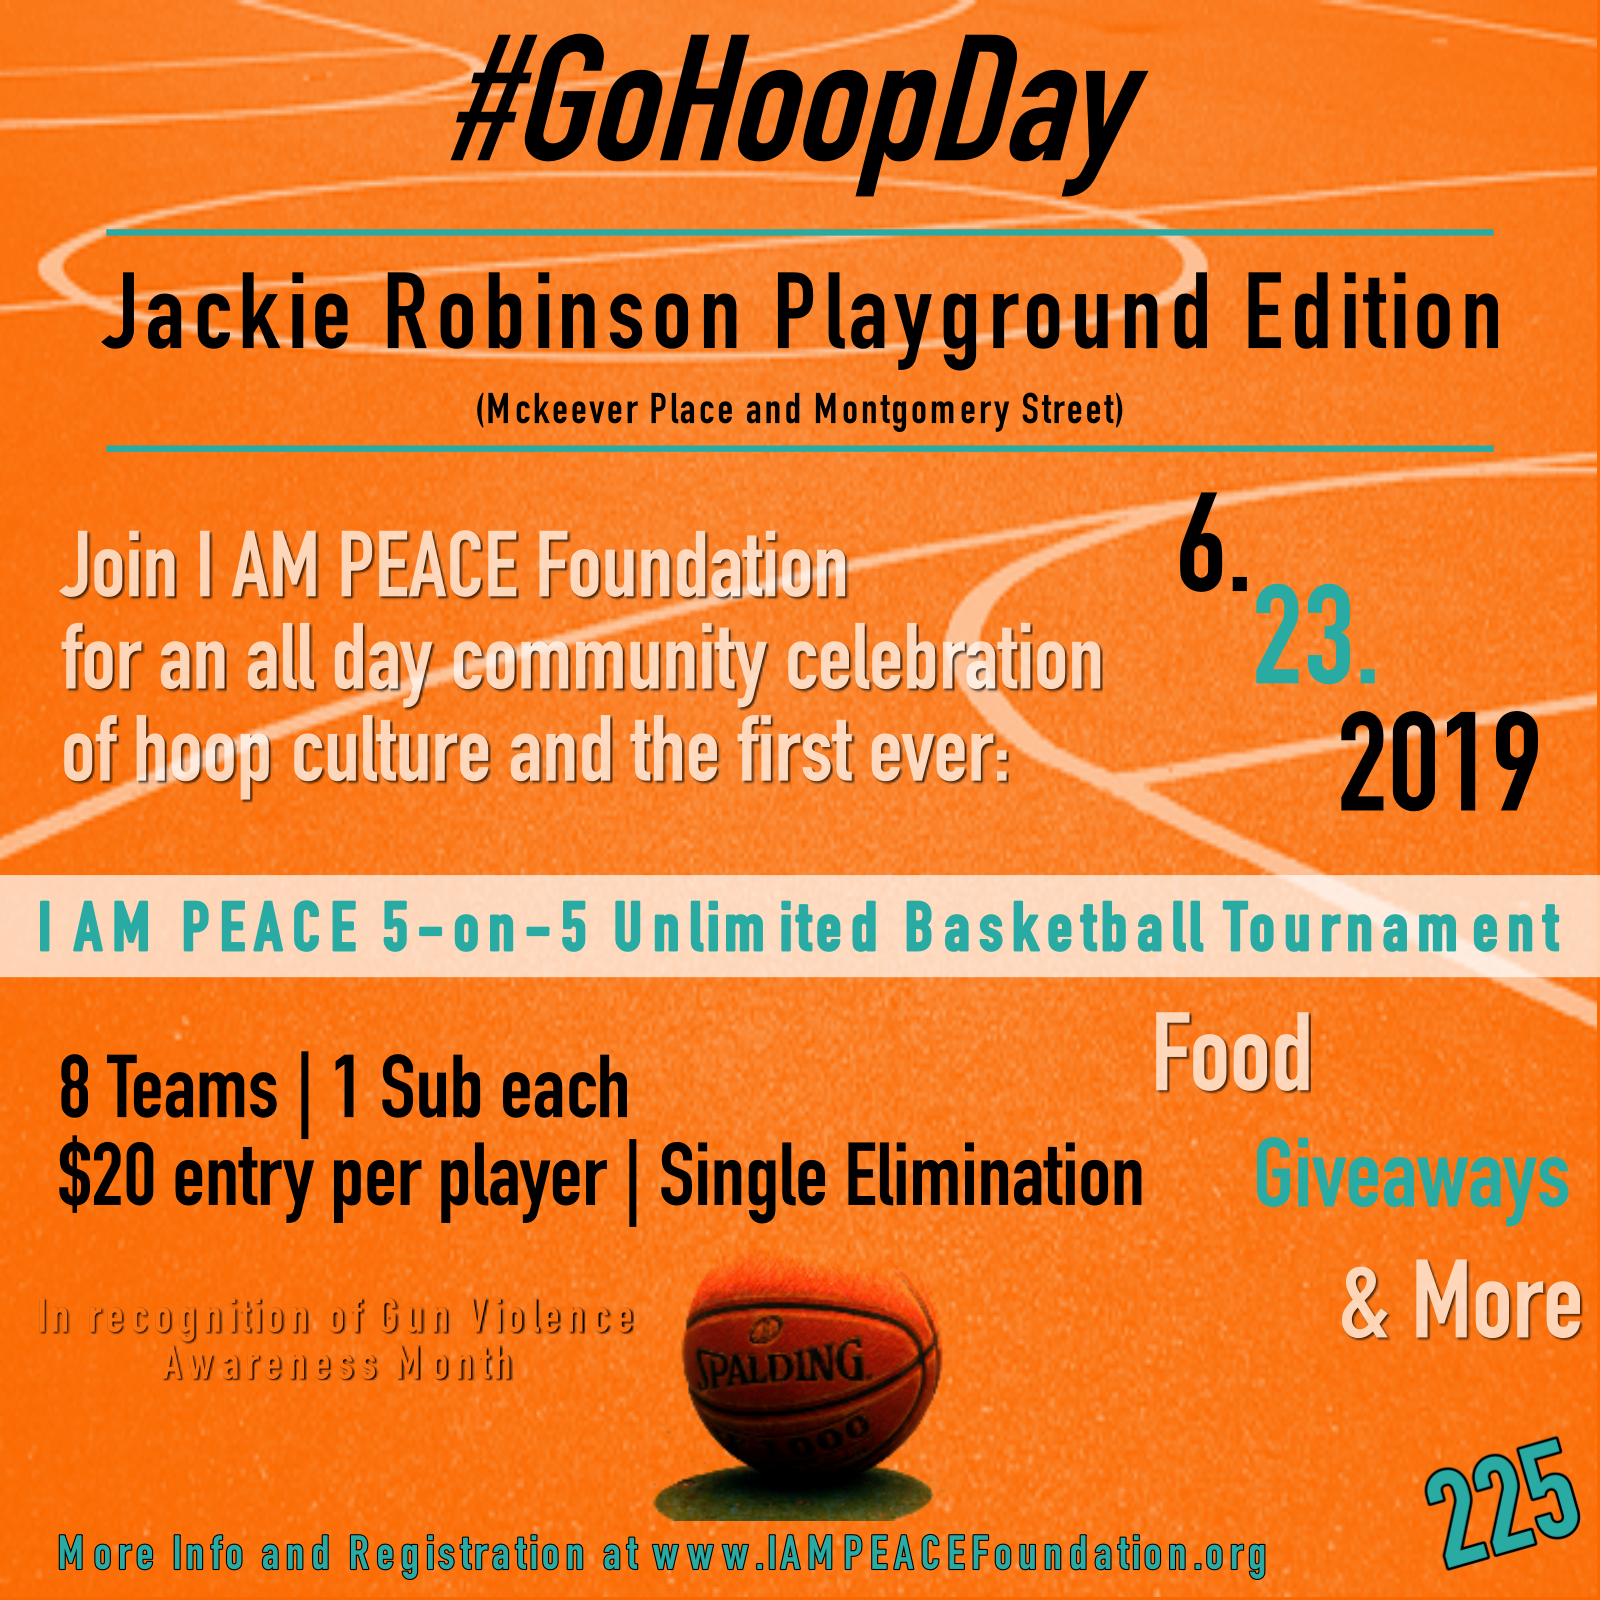 GoHoopDay - 6.23.19 2 PNG.png